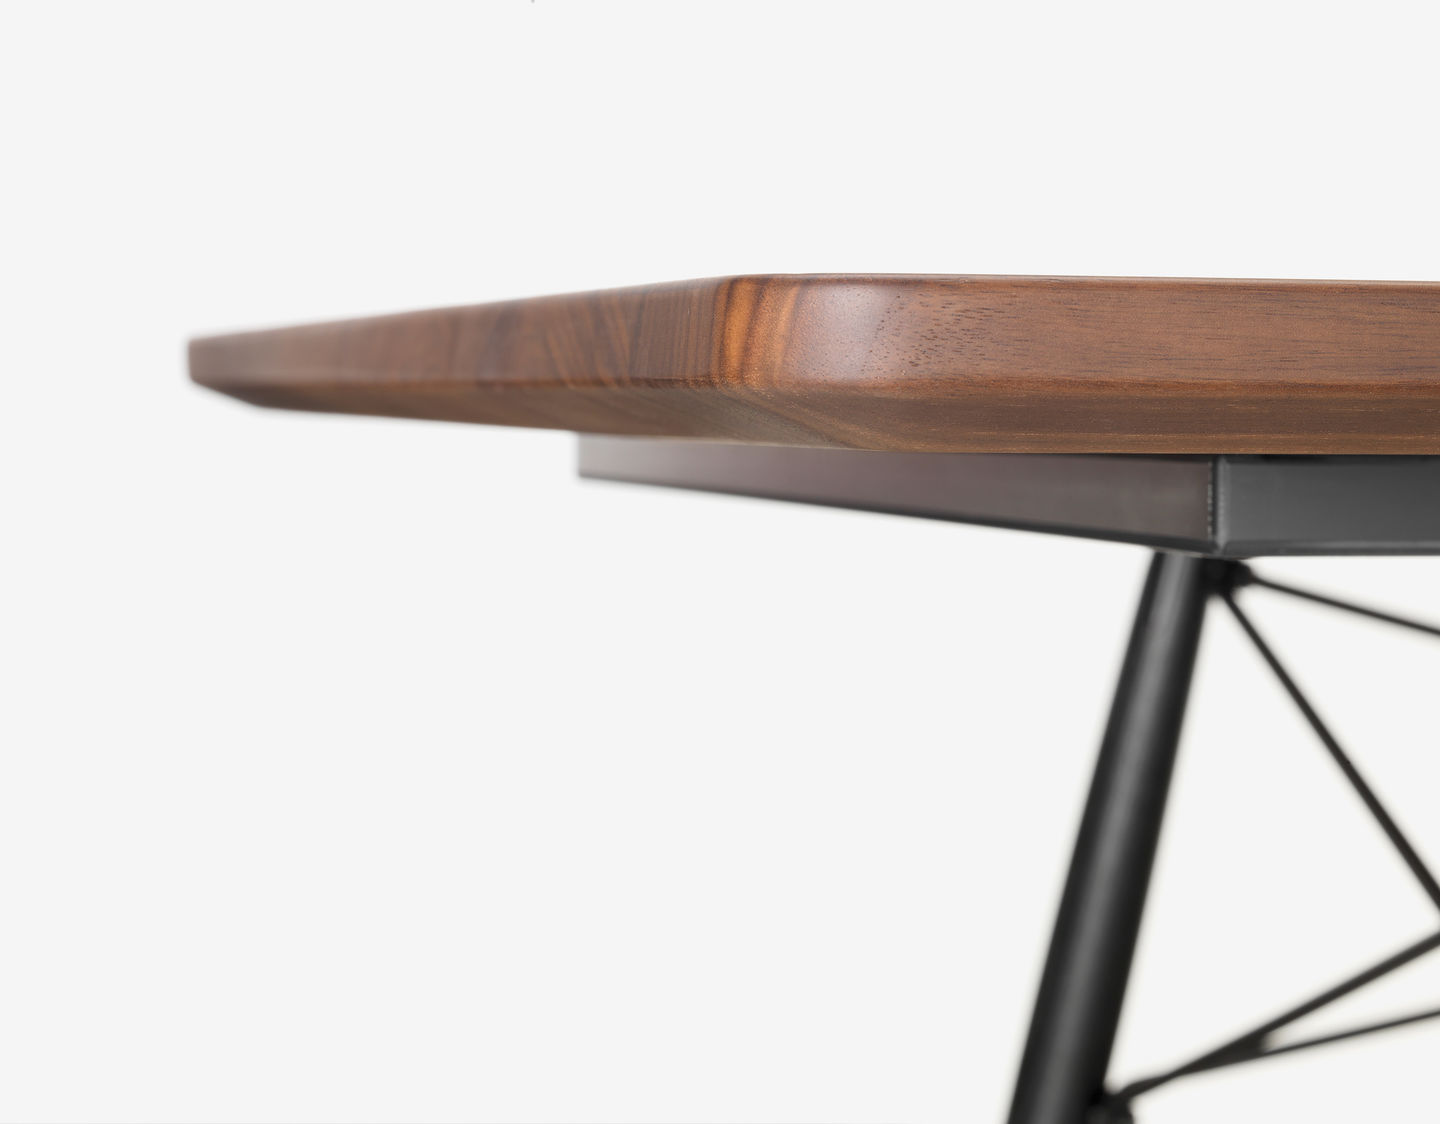 The Base Combining Wooden Legs With Metal Cross Struts Provides A Le Understructure And Emphasises Understated Elegance Of Eames Coffee Table